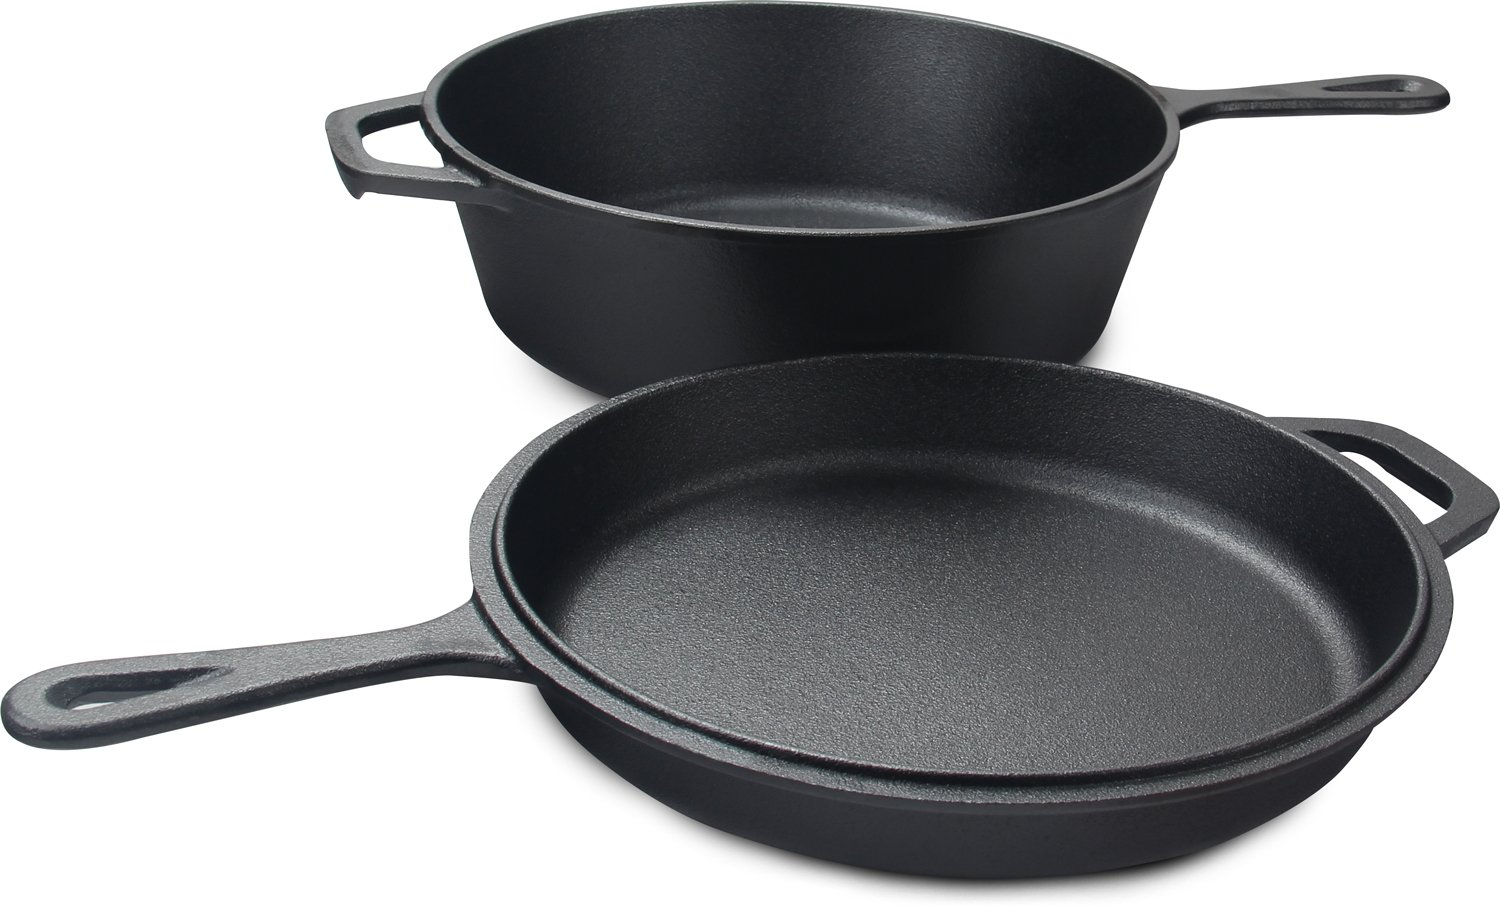 Utopia Kitchen Pre-Seasoned Cast Iron 2-In-1 Combo Cooker with 3.2 Quart Dutch Oven and 10.25 inch Skillet UK0222